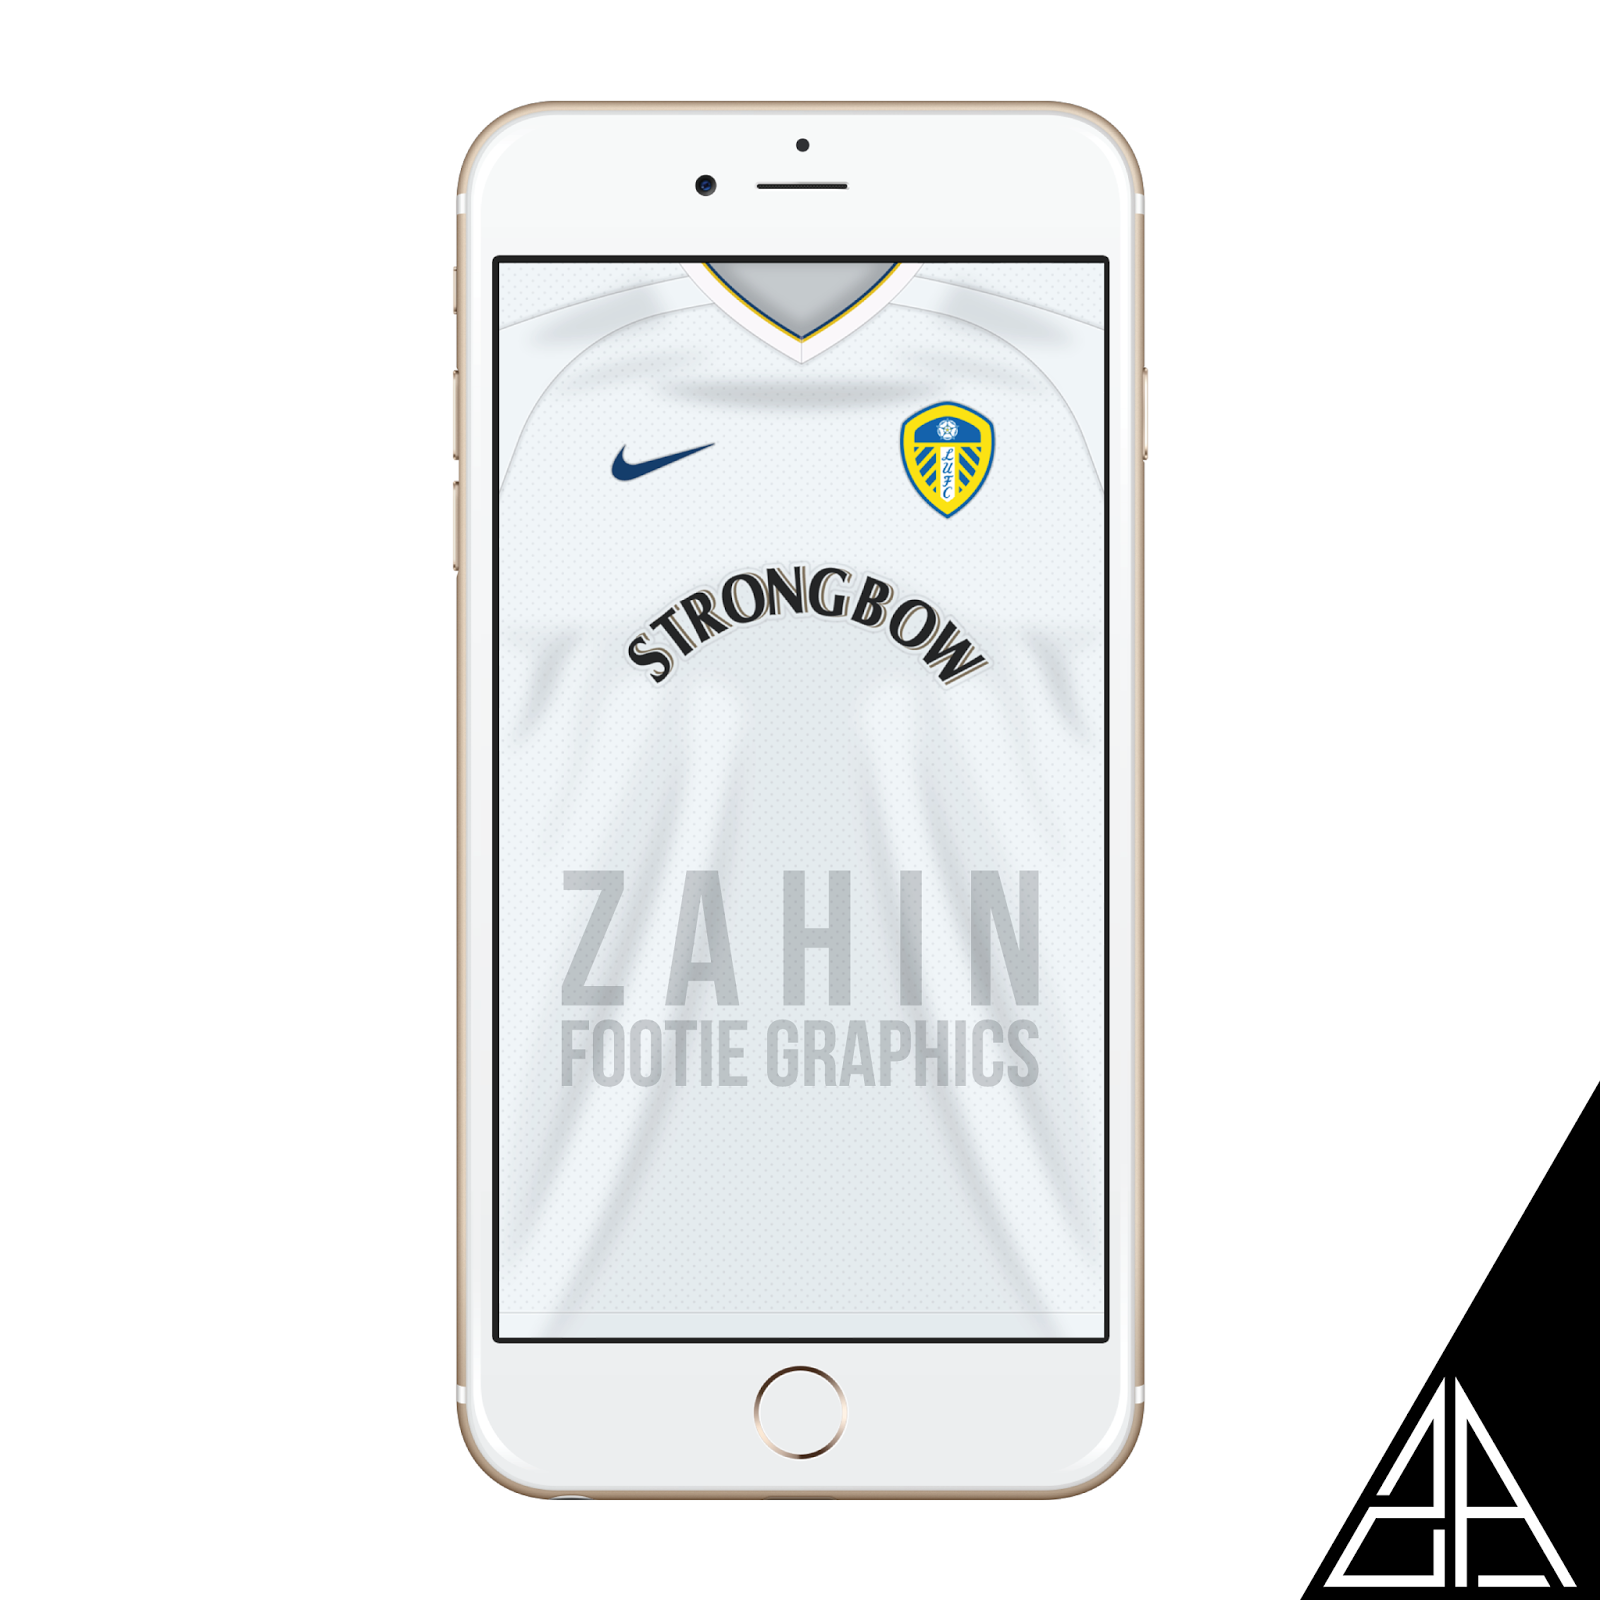 0e3975f9c Leeds United home kit 2000 02 wallpaper for your iPhone   Android.